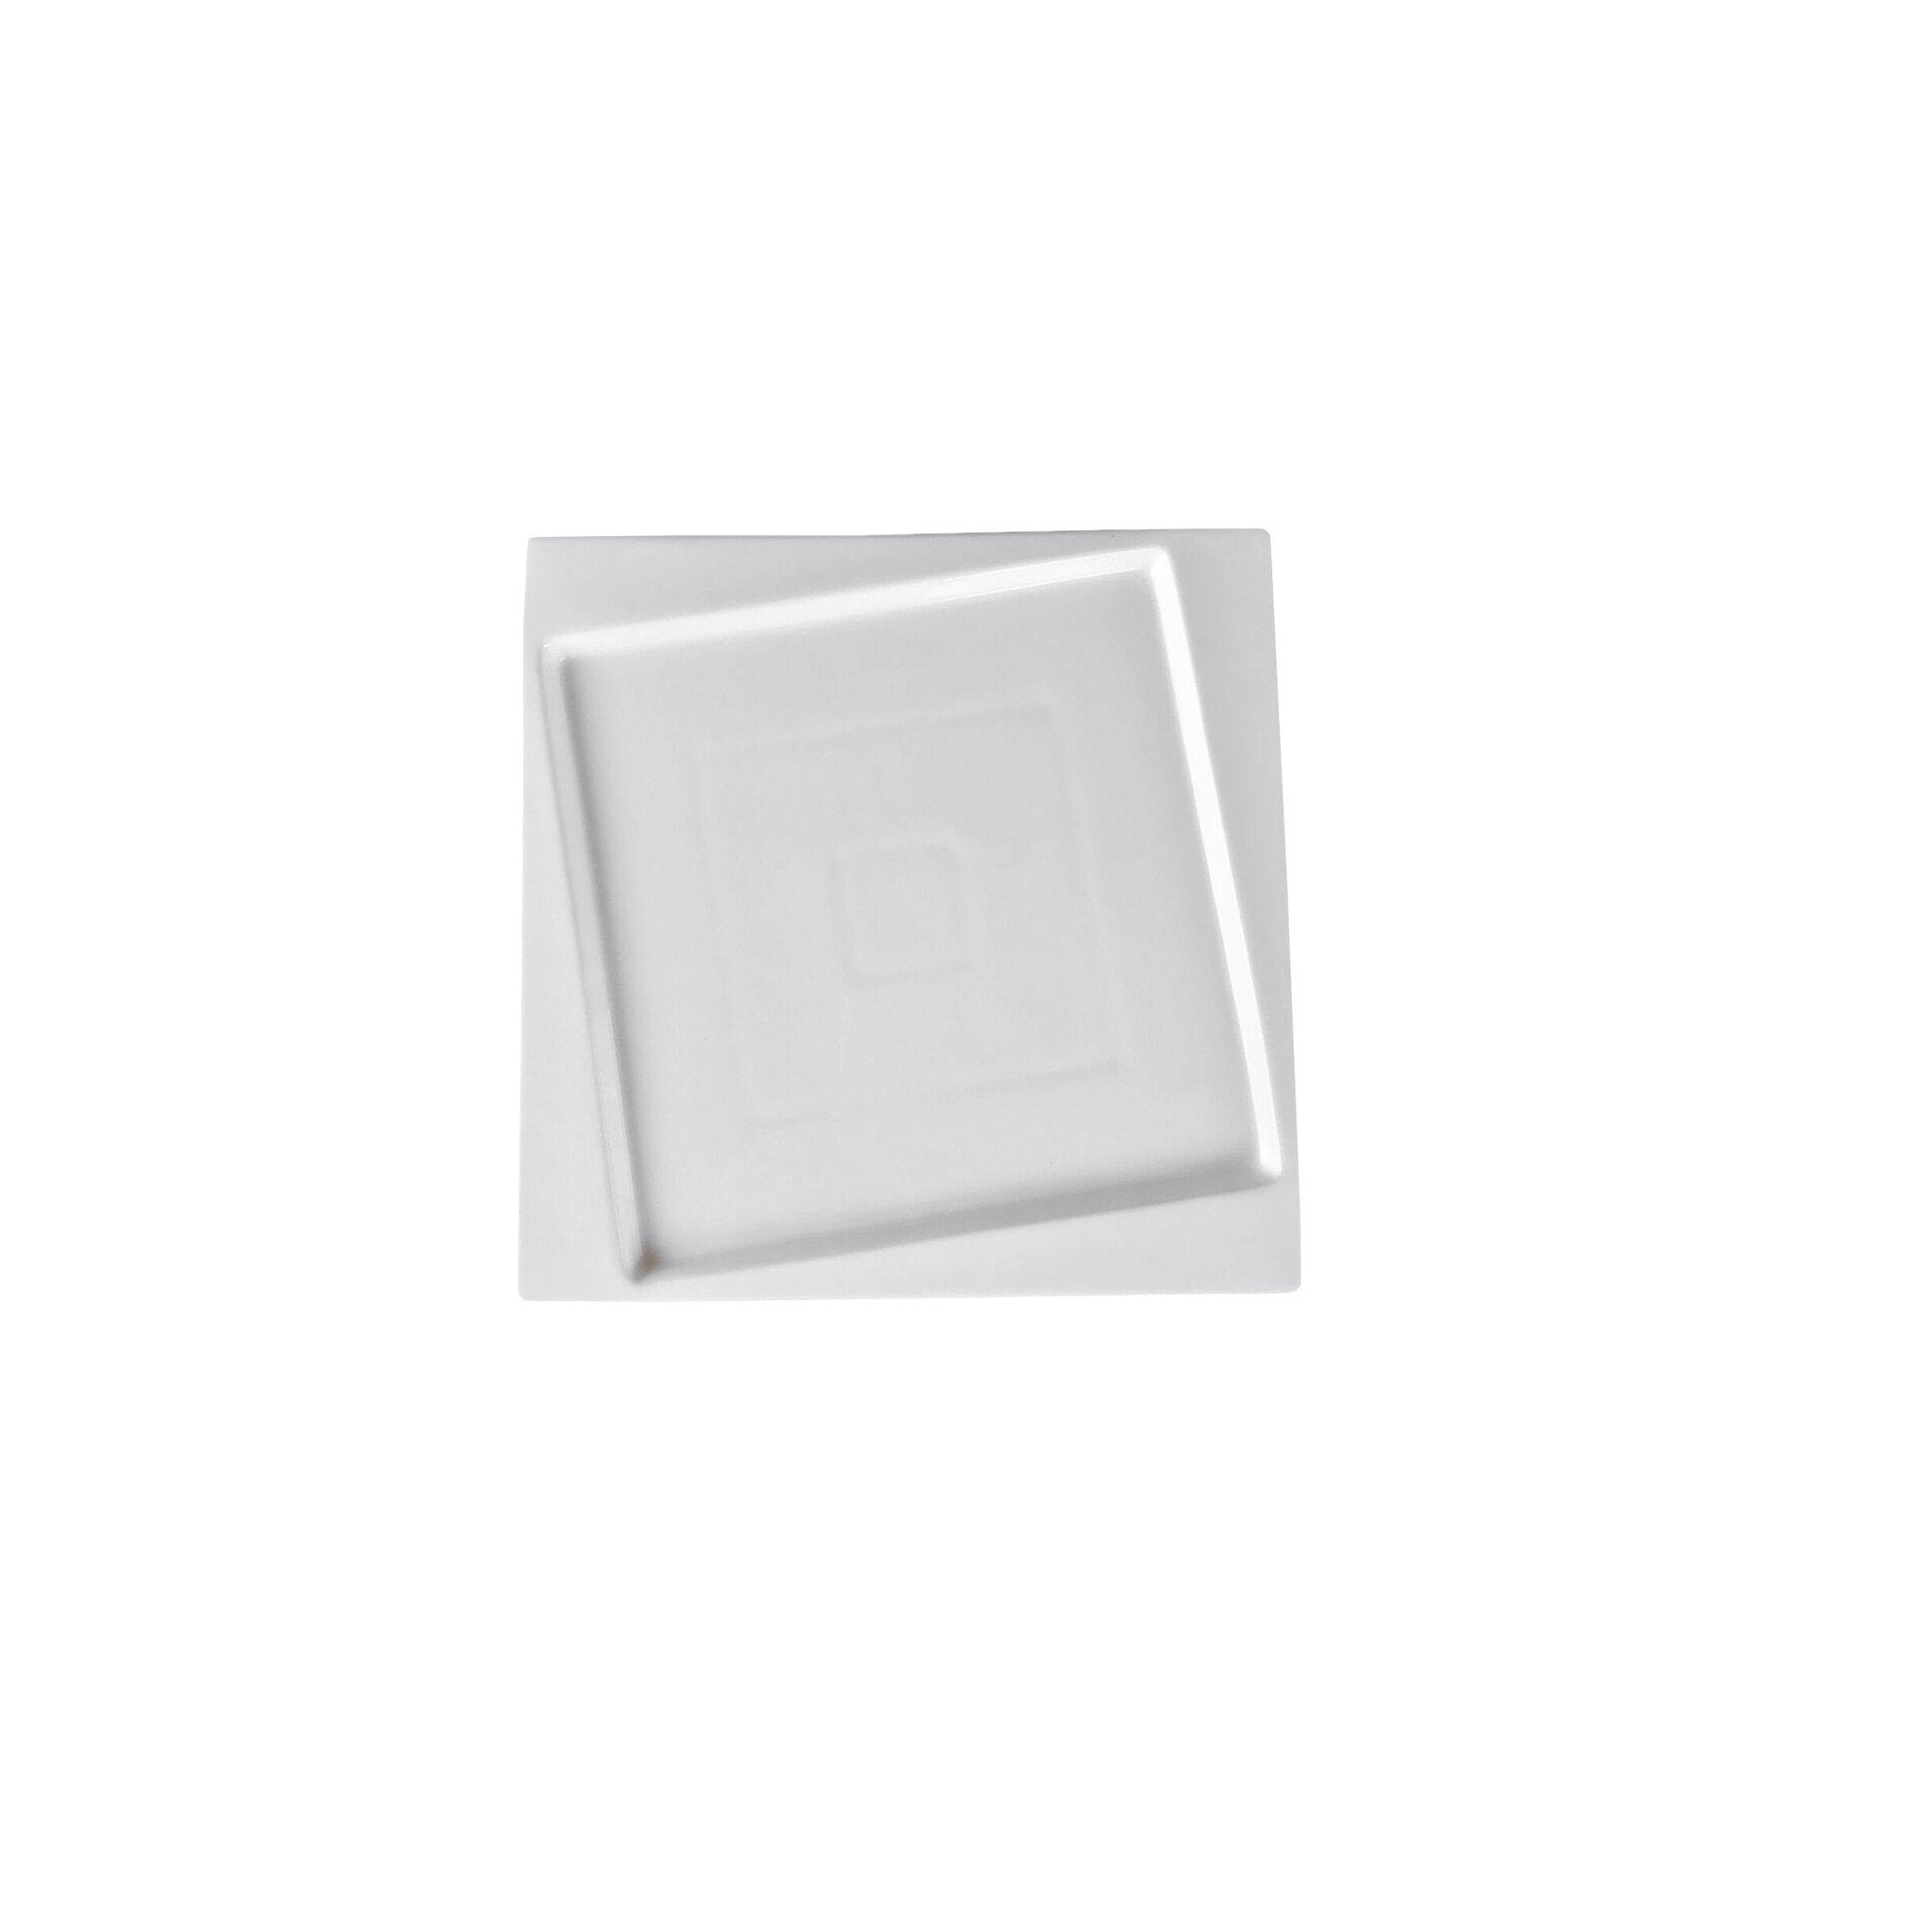 "Square Collection 6.3"" (16 cm) Porcelain Bread and Butter Plate"